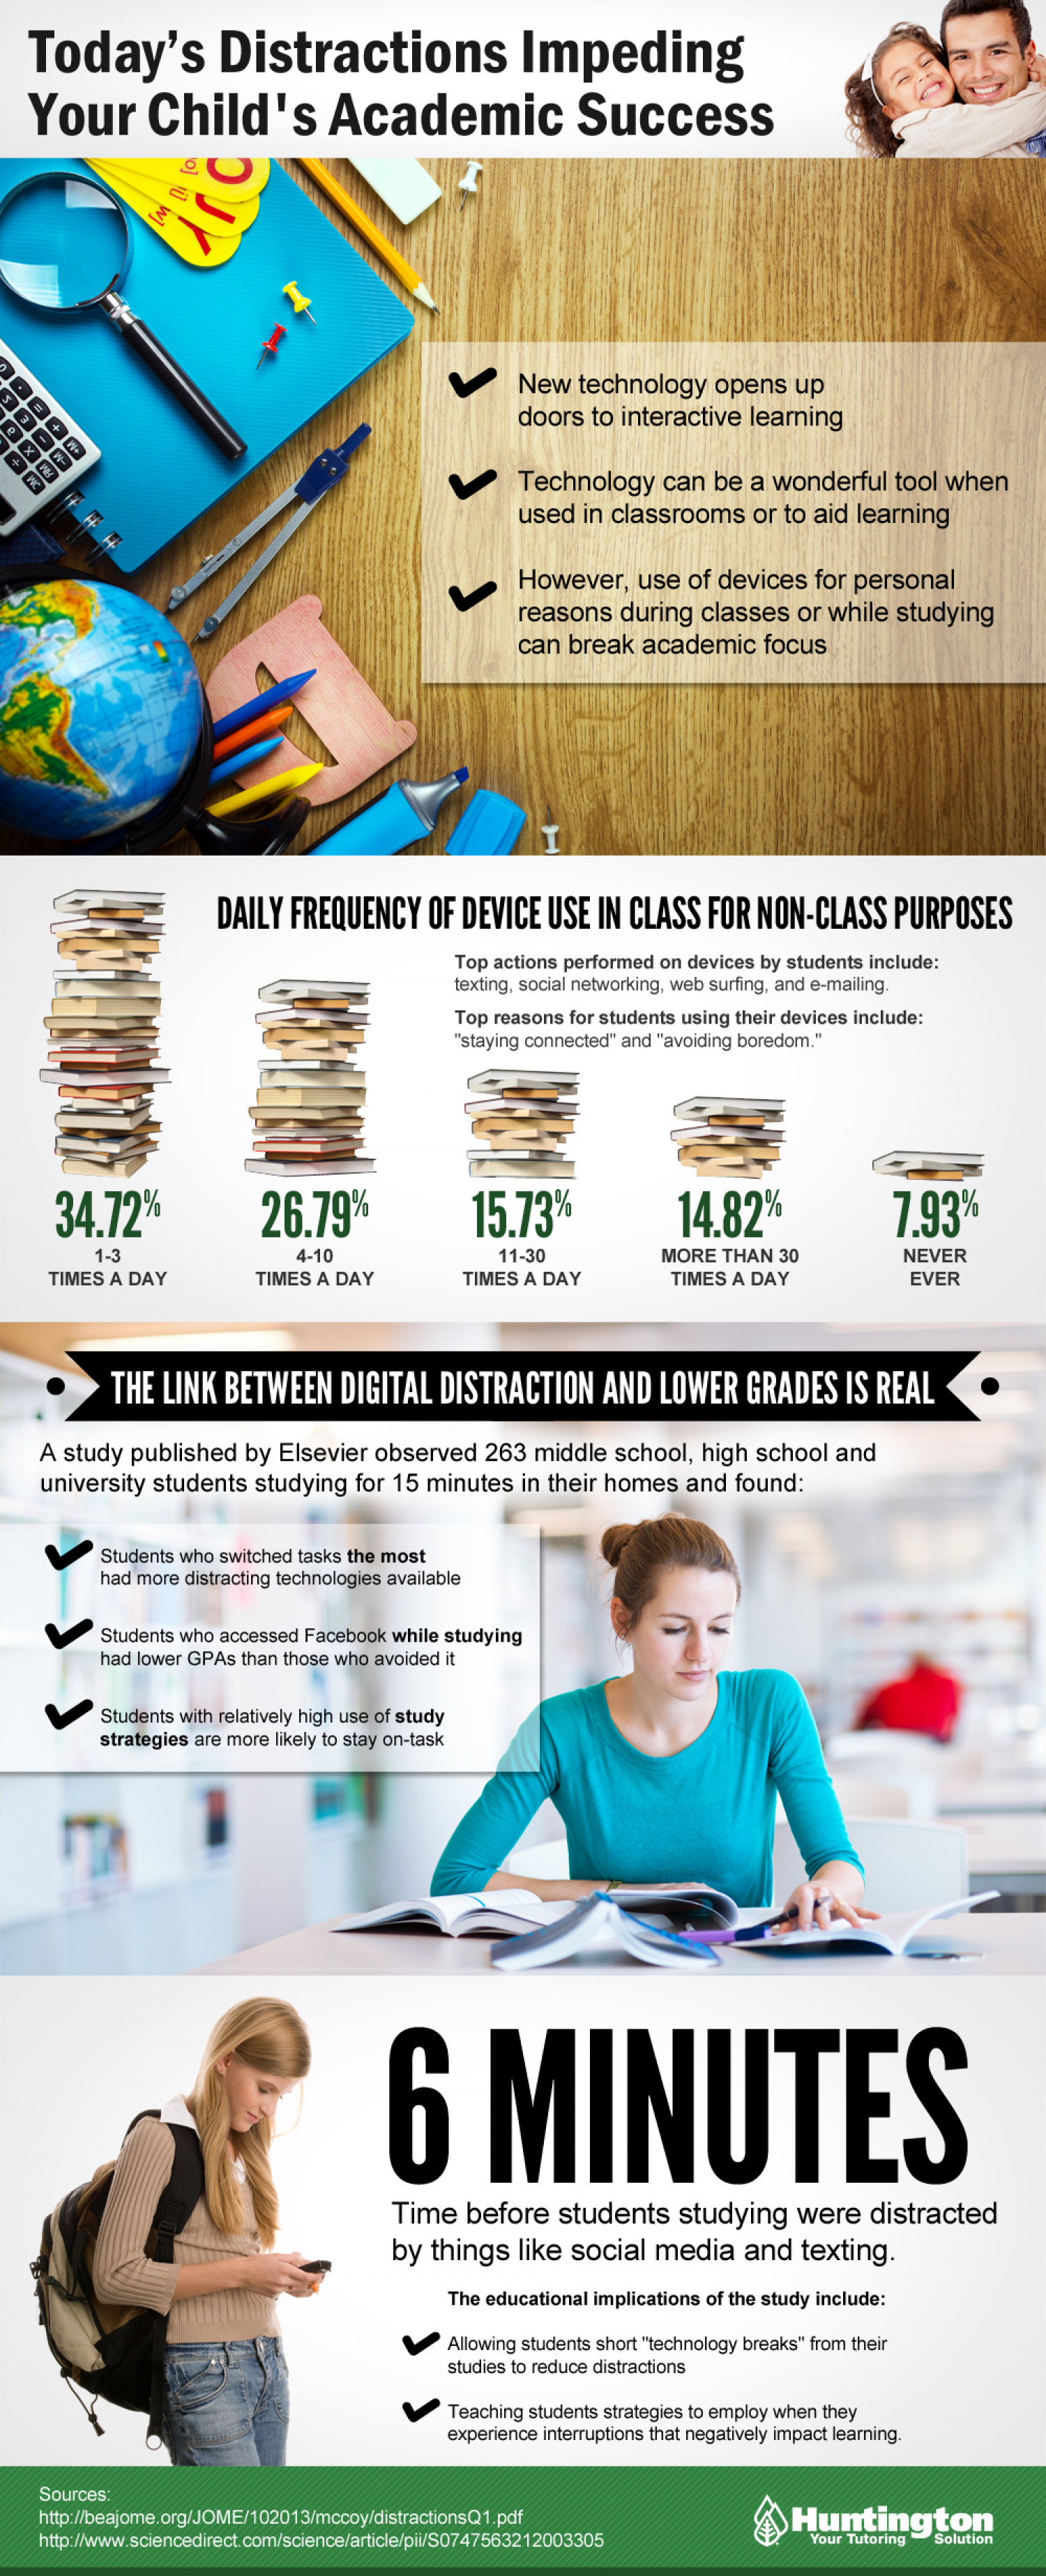 Today's Distractions Impeding Your Child's Academic Success Infographic